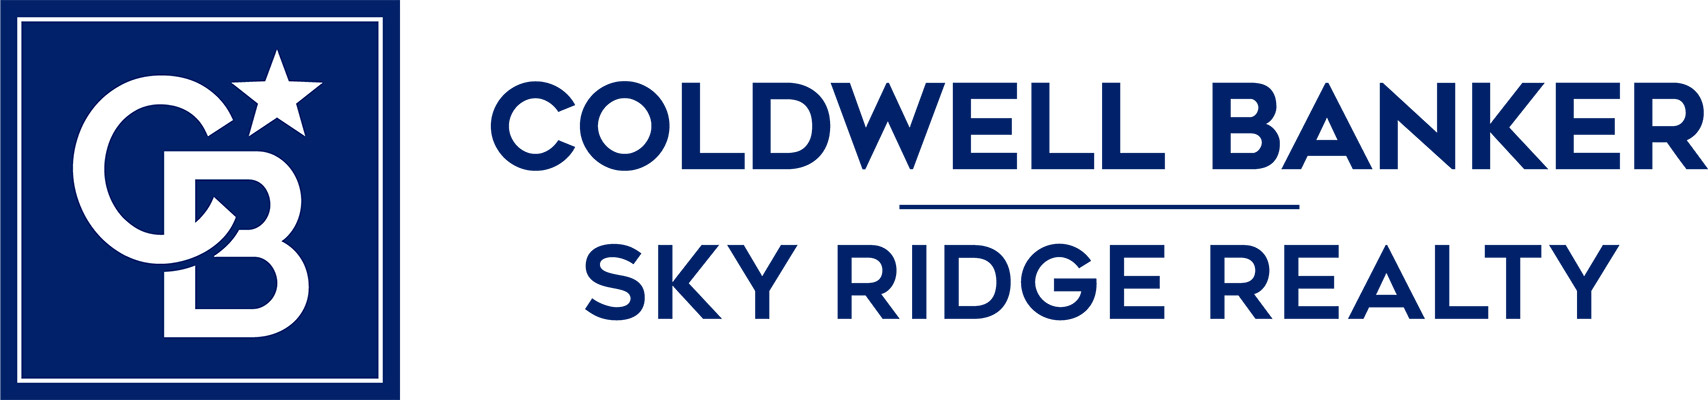 Sarah Polley - Coldwell Banker Sky Ridge Realty